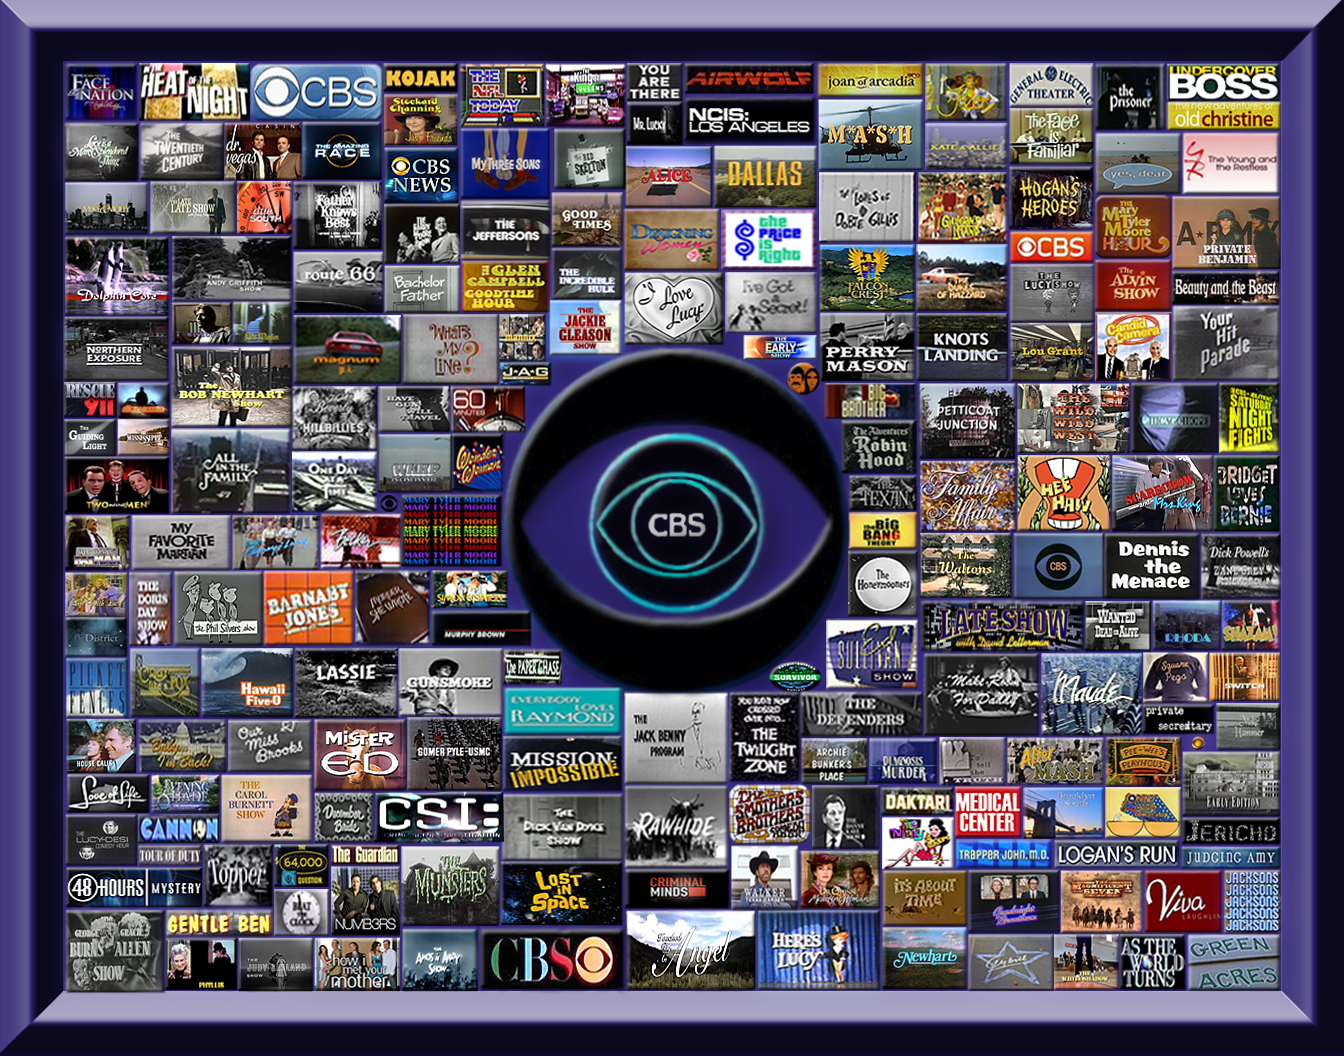 CBS televisão Over the Years